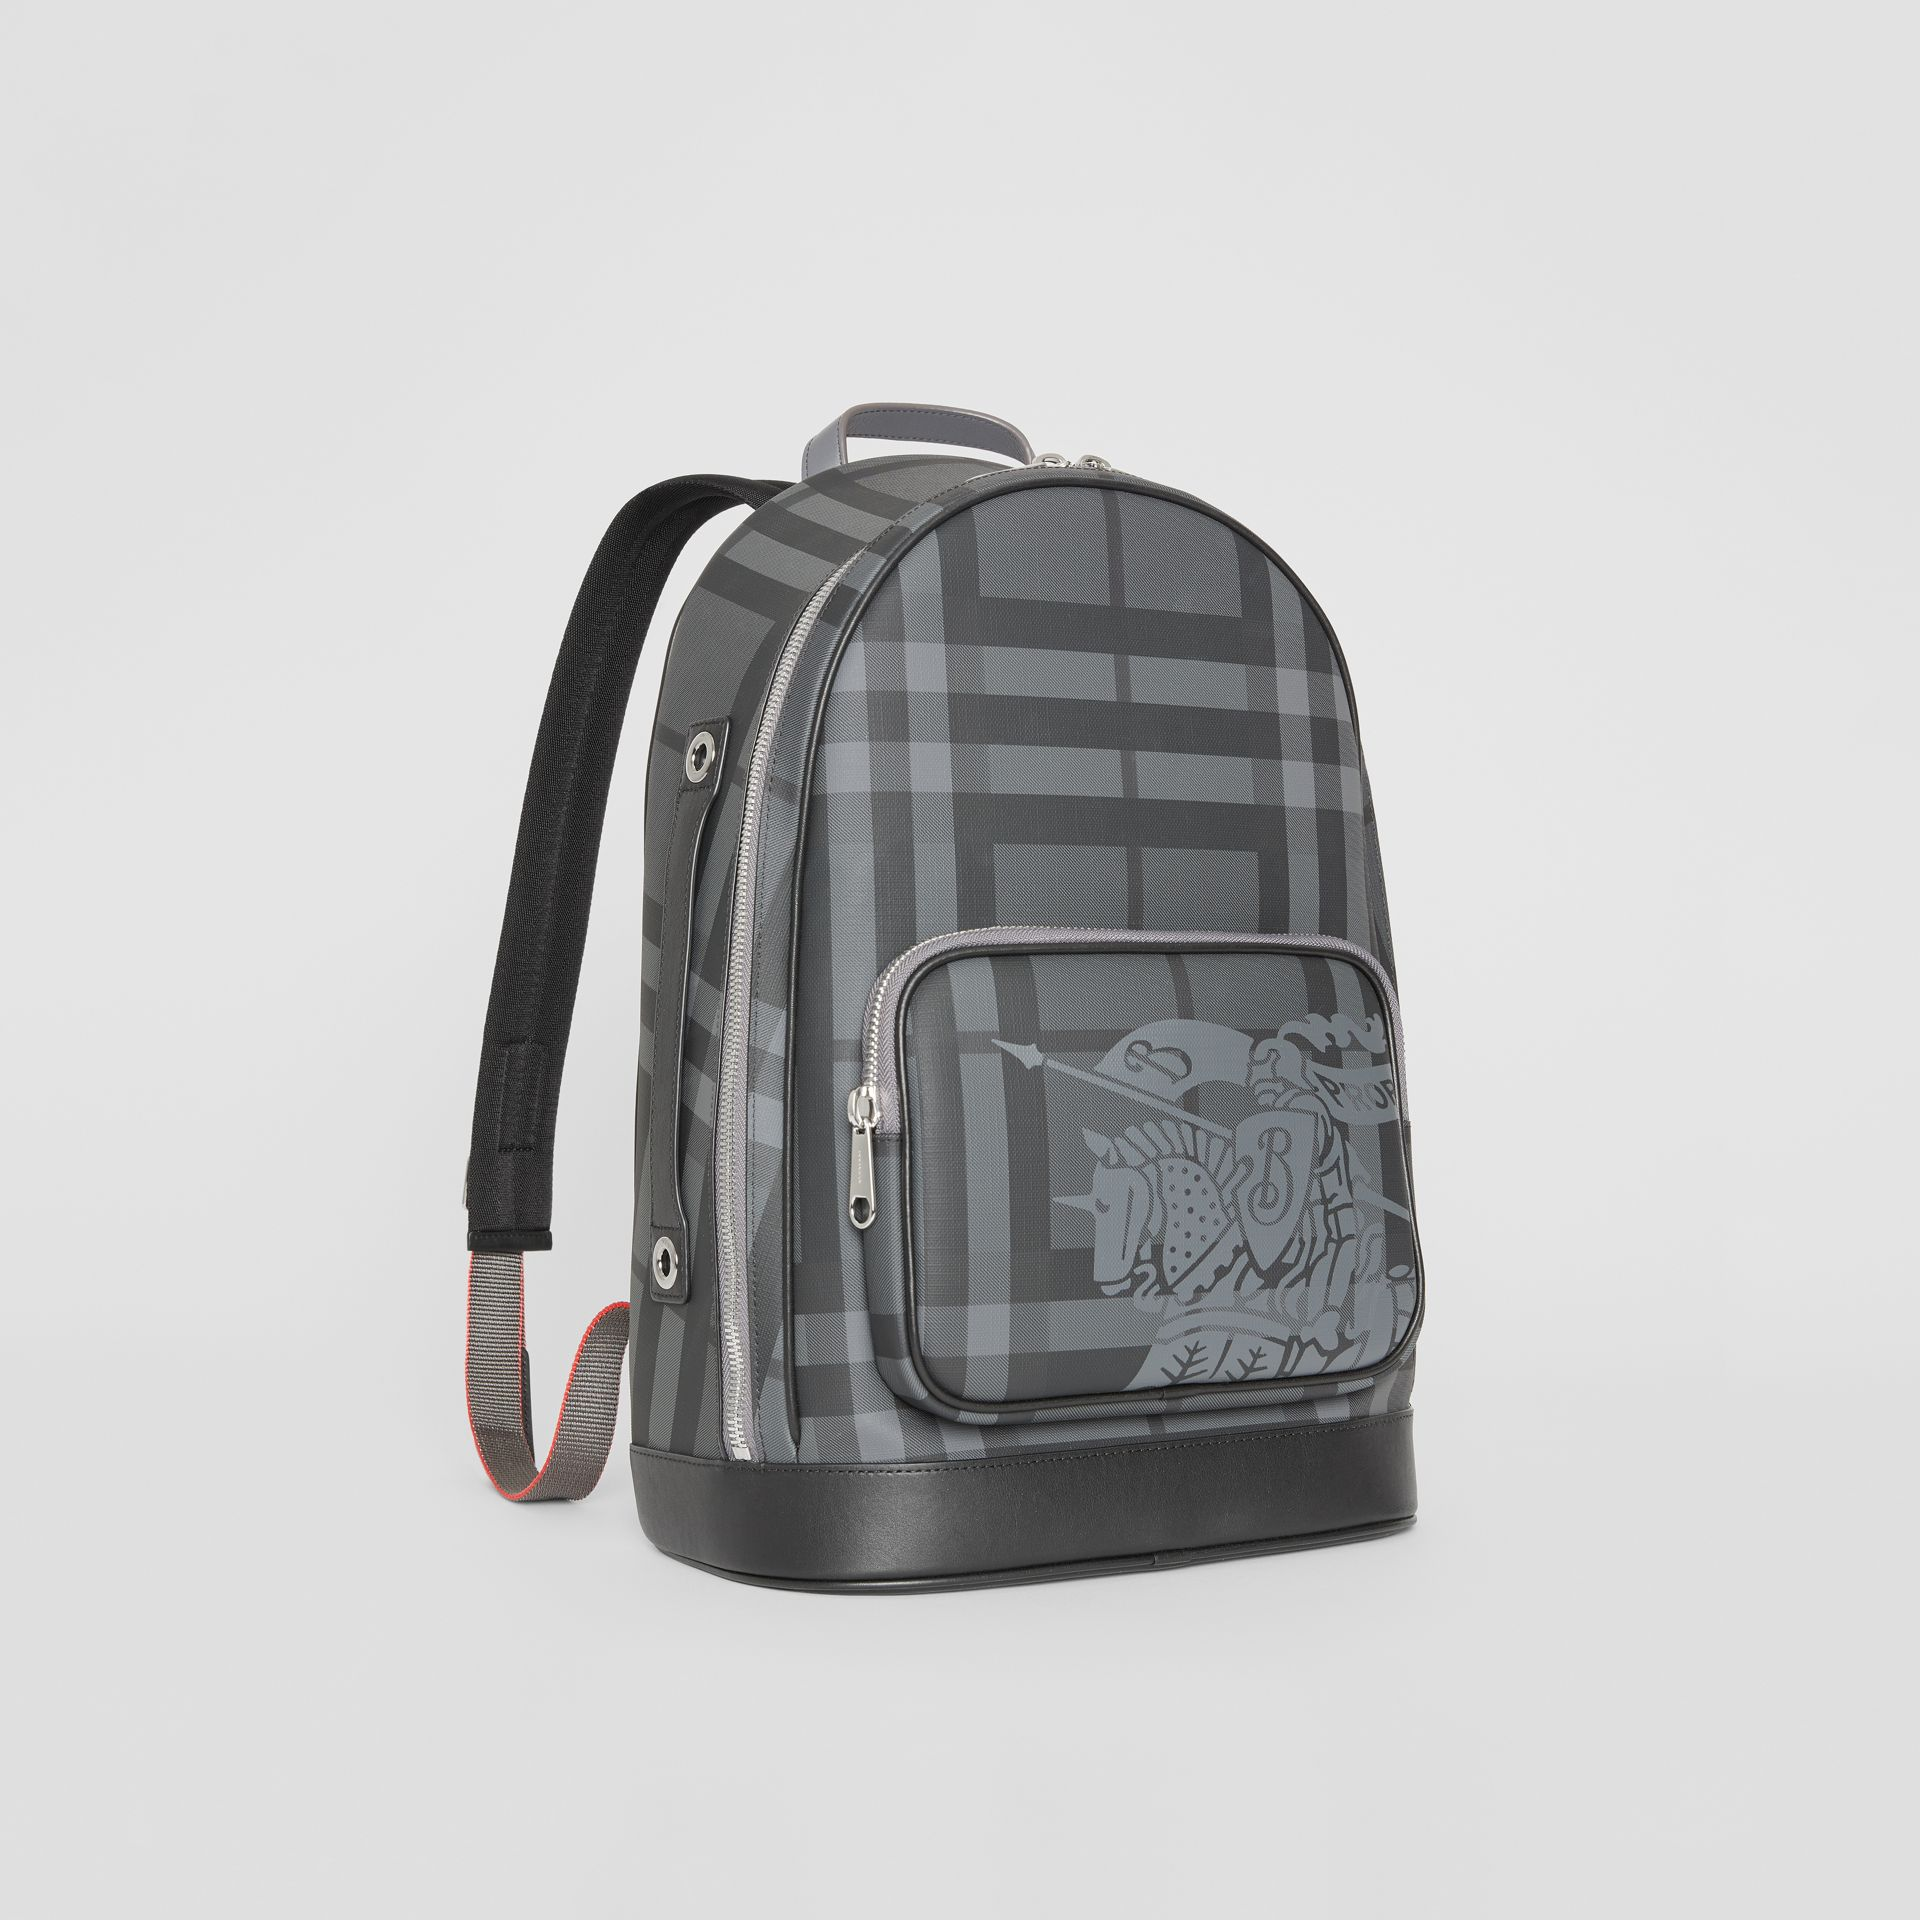 EKD London Check and Leather Backpack in Charcoal/black - Men | Burberry - gallery image 6